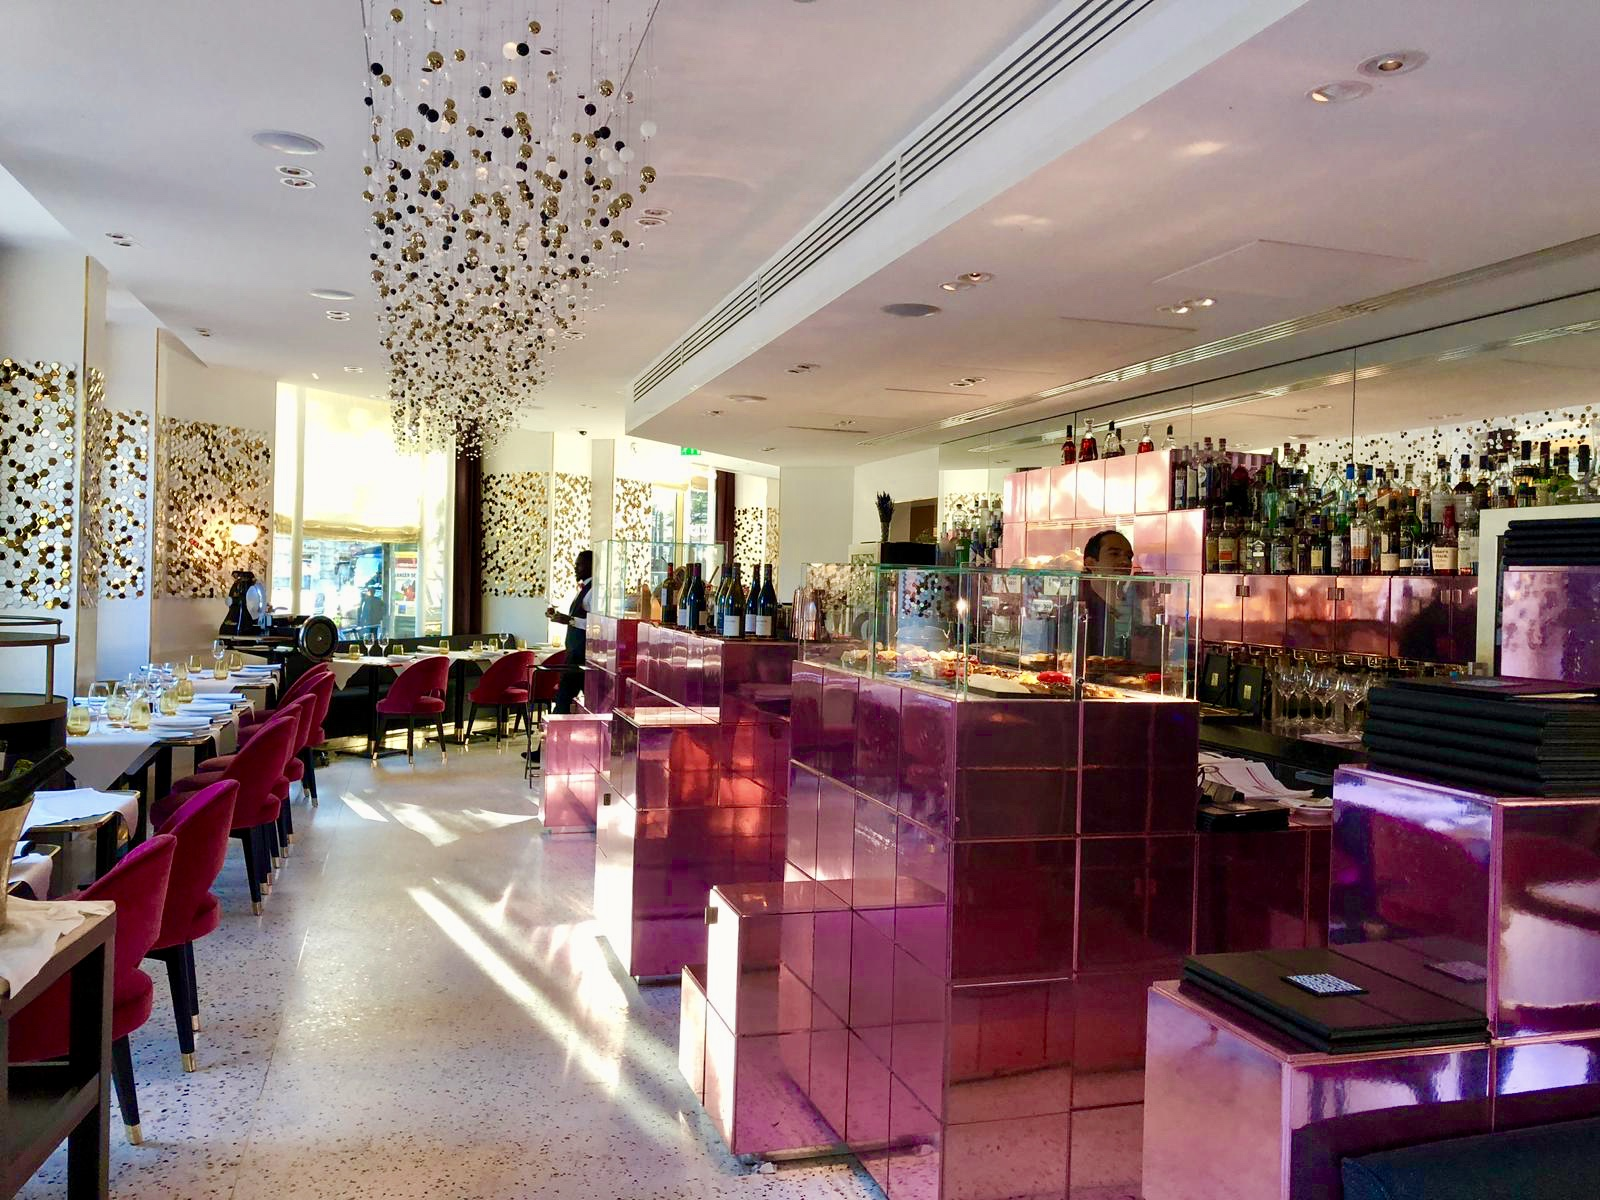 fauchon-hotel-paris-lustforthesublime